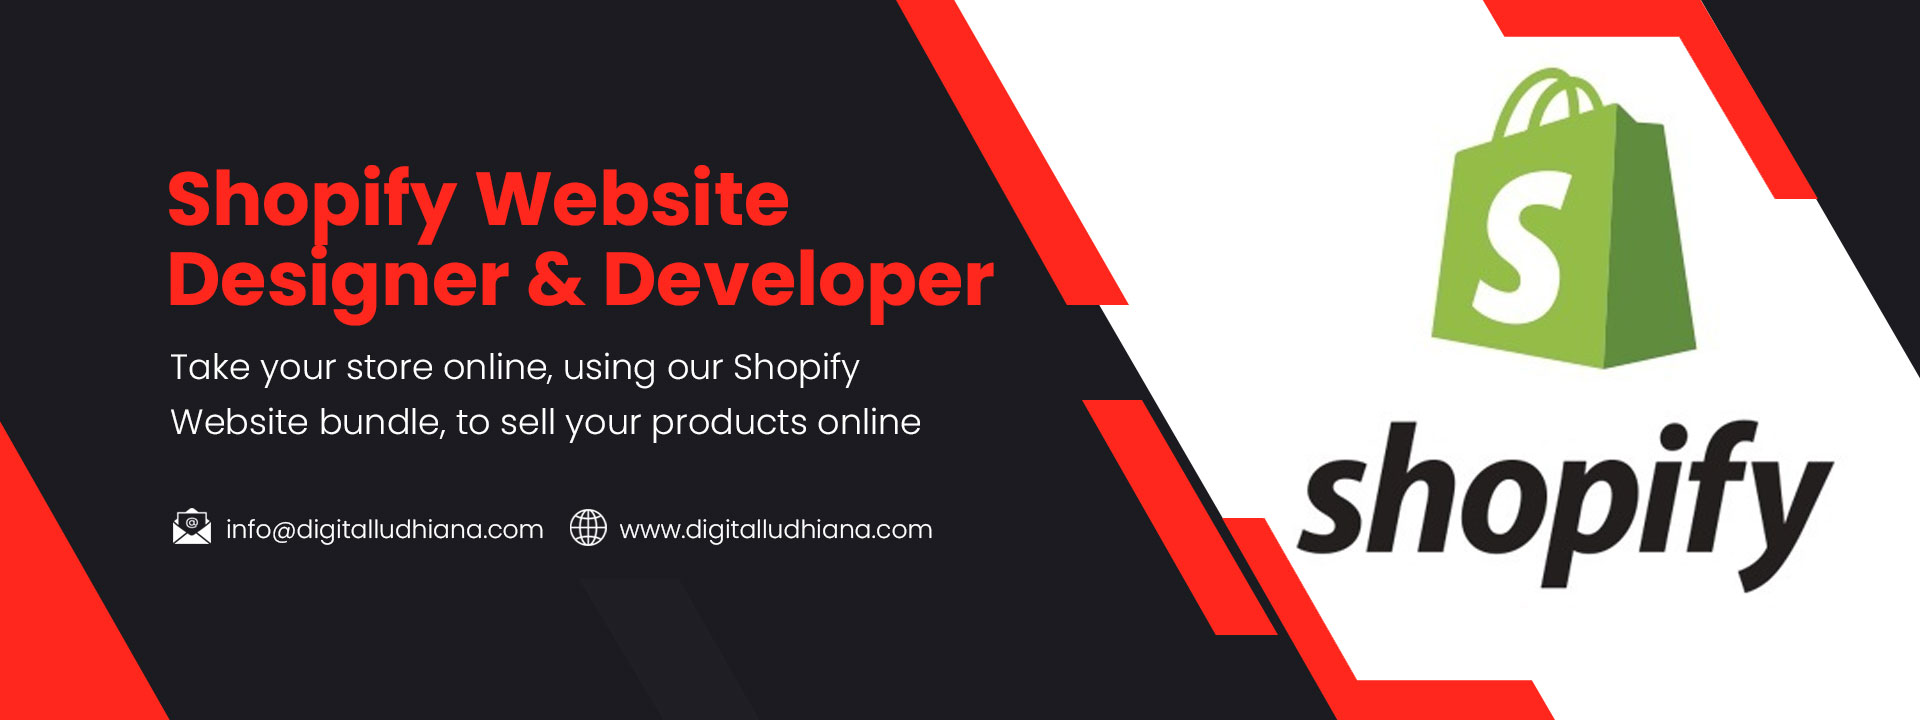 shopify website designing development outsourcing services in ludhiana punjab india